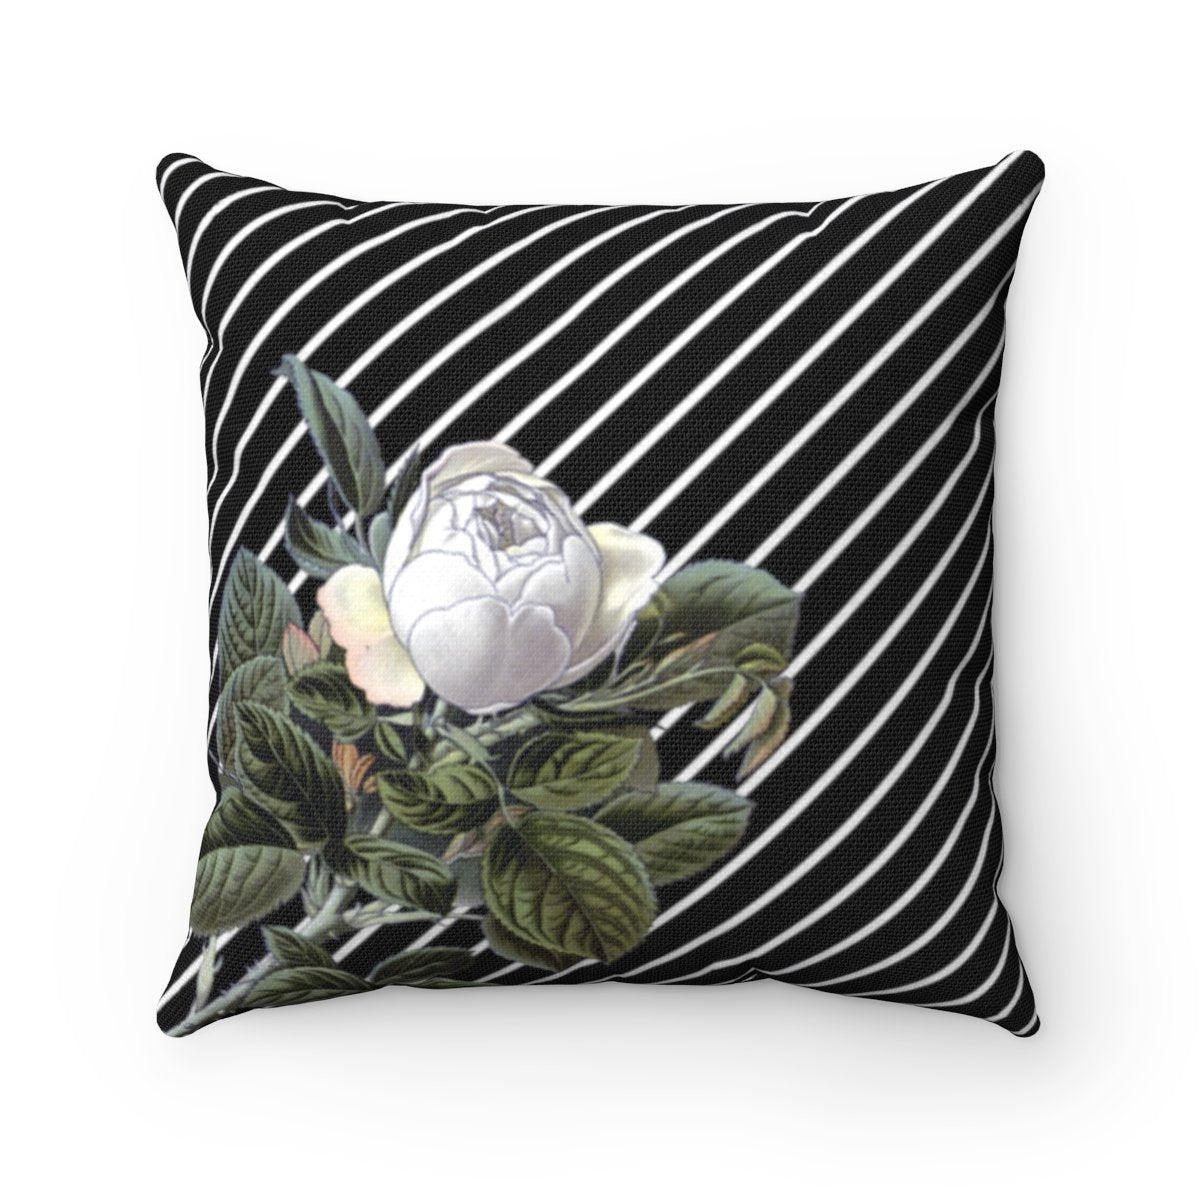 Luxury Camellia Striped Floral decorative cushion cover-Home Decor - Decorative Accents - Pillows & Throws - Decorative Pillows-Maison d'Elite-14x14-Très Elite